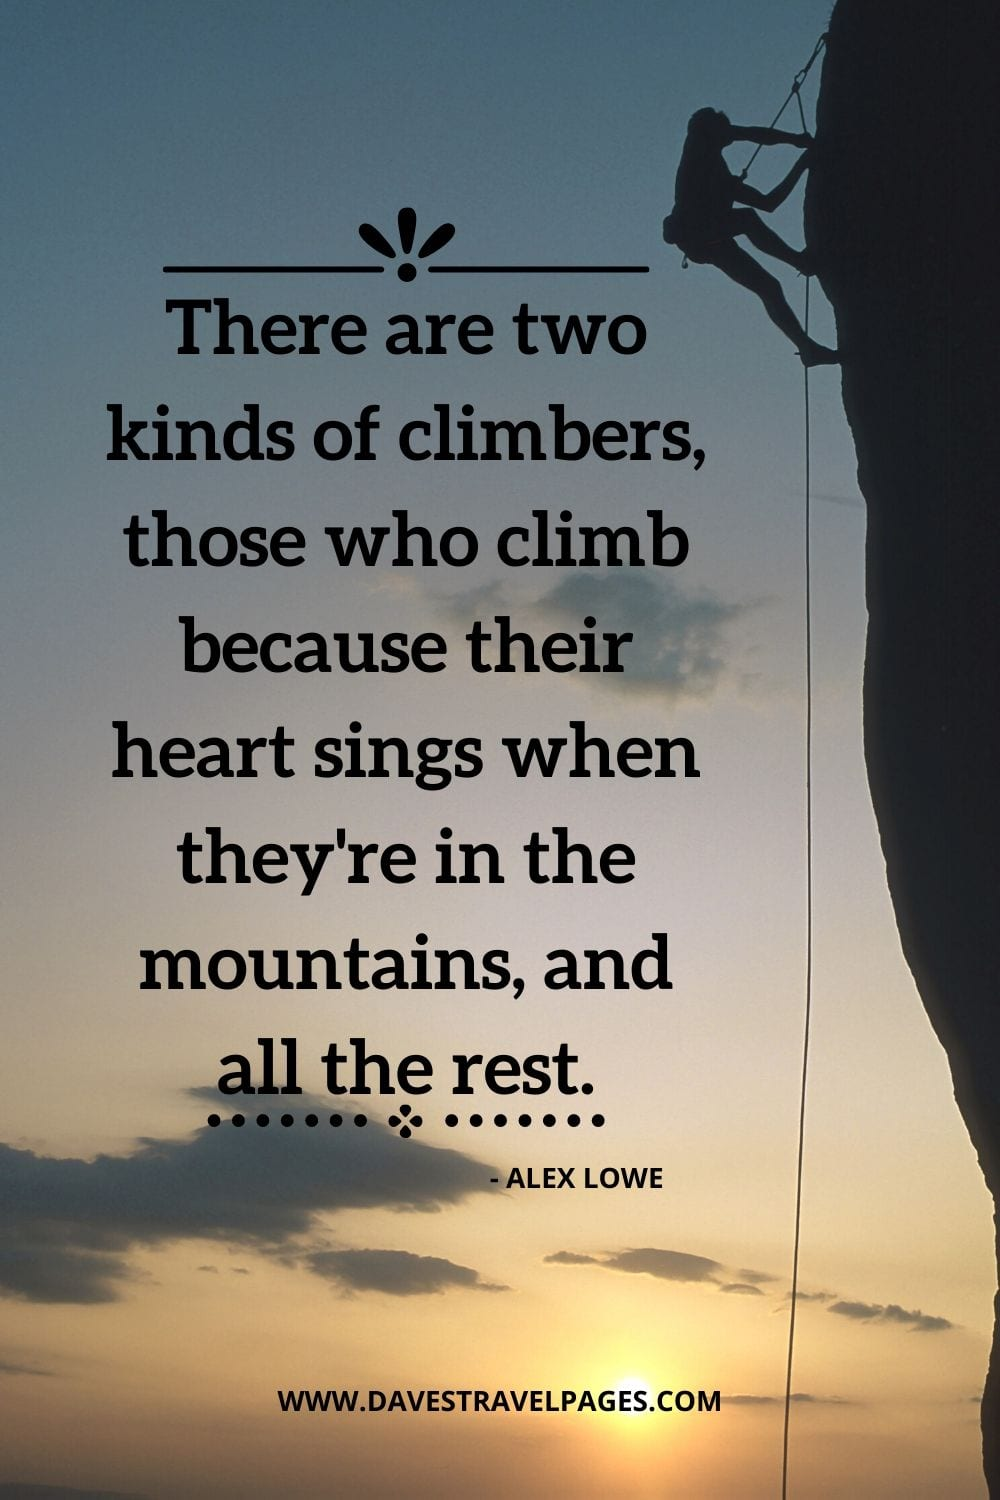 Climbing Quotes - There are two kinds of climbers, those who climb because their heart sings when they're in the mountains, and all the rest. - Alex Lowe